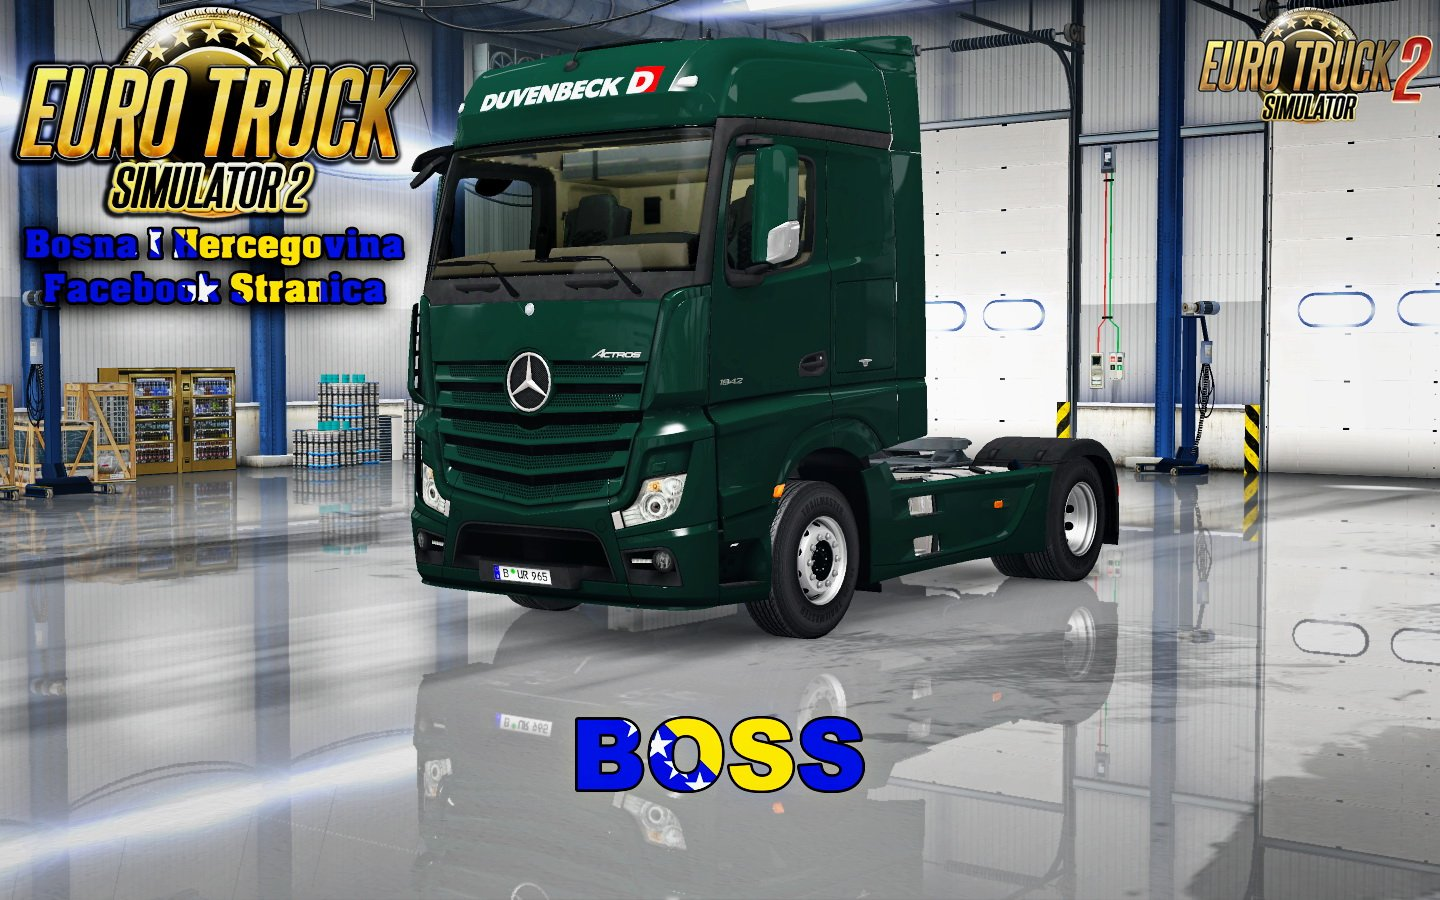 Mercedes MP4 Duvenbeck Skin v1.0 by Boss